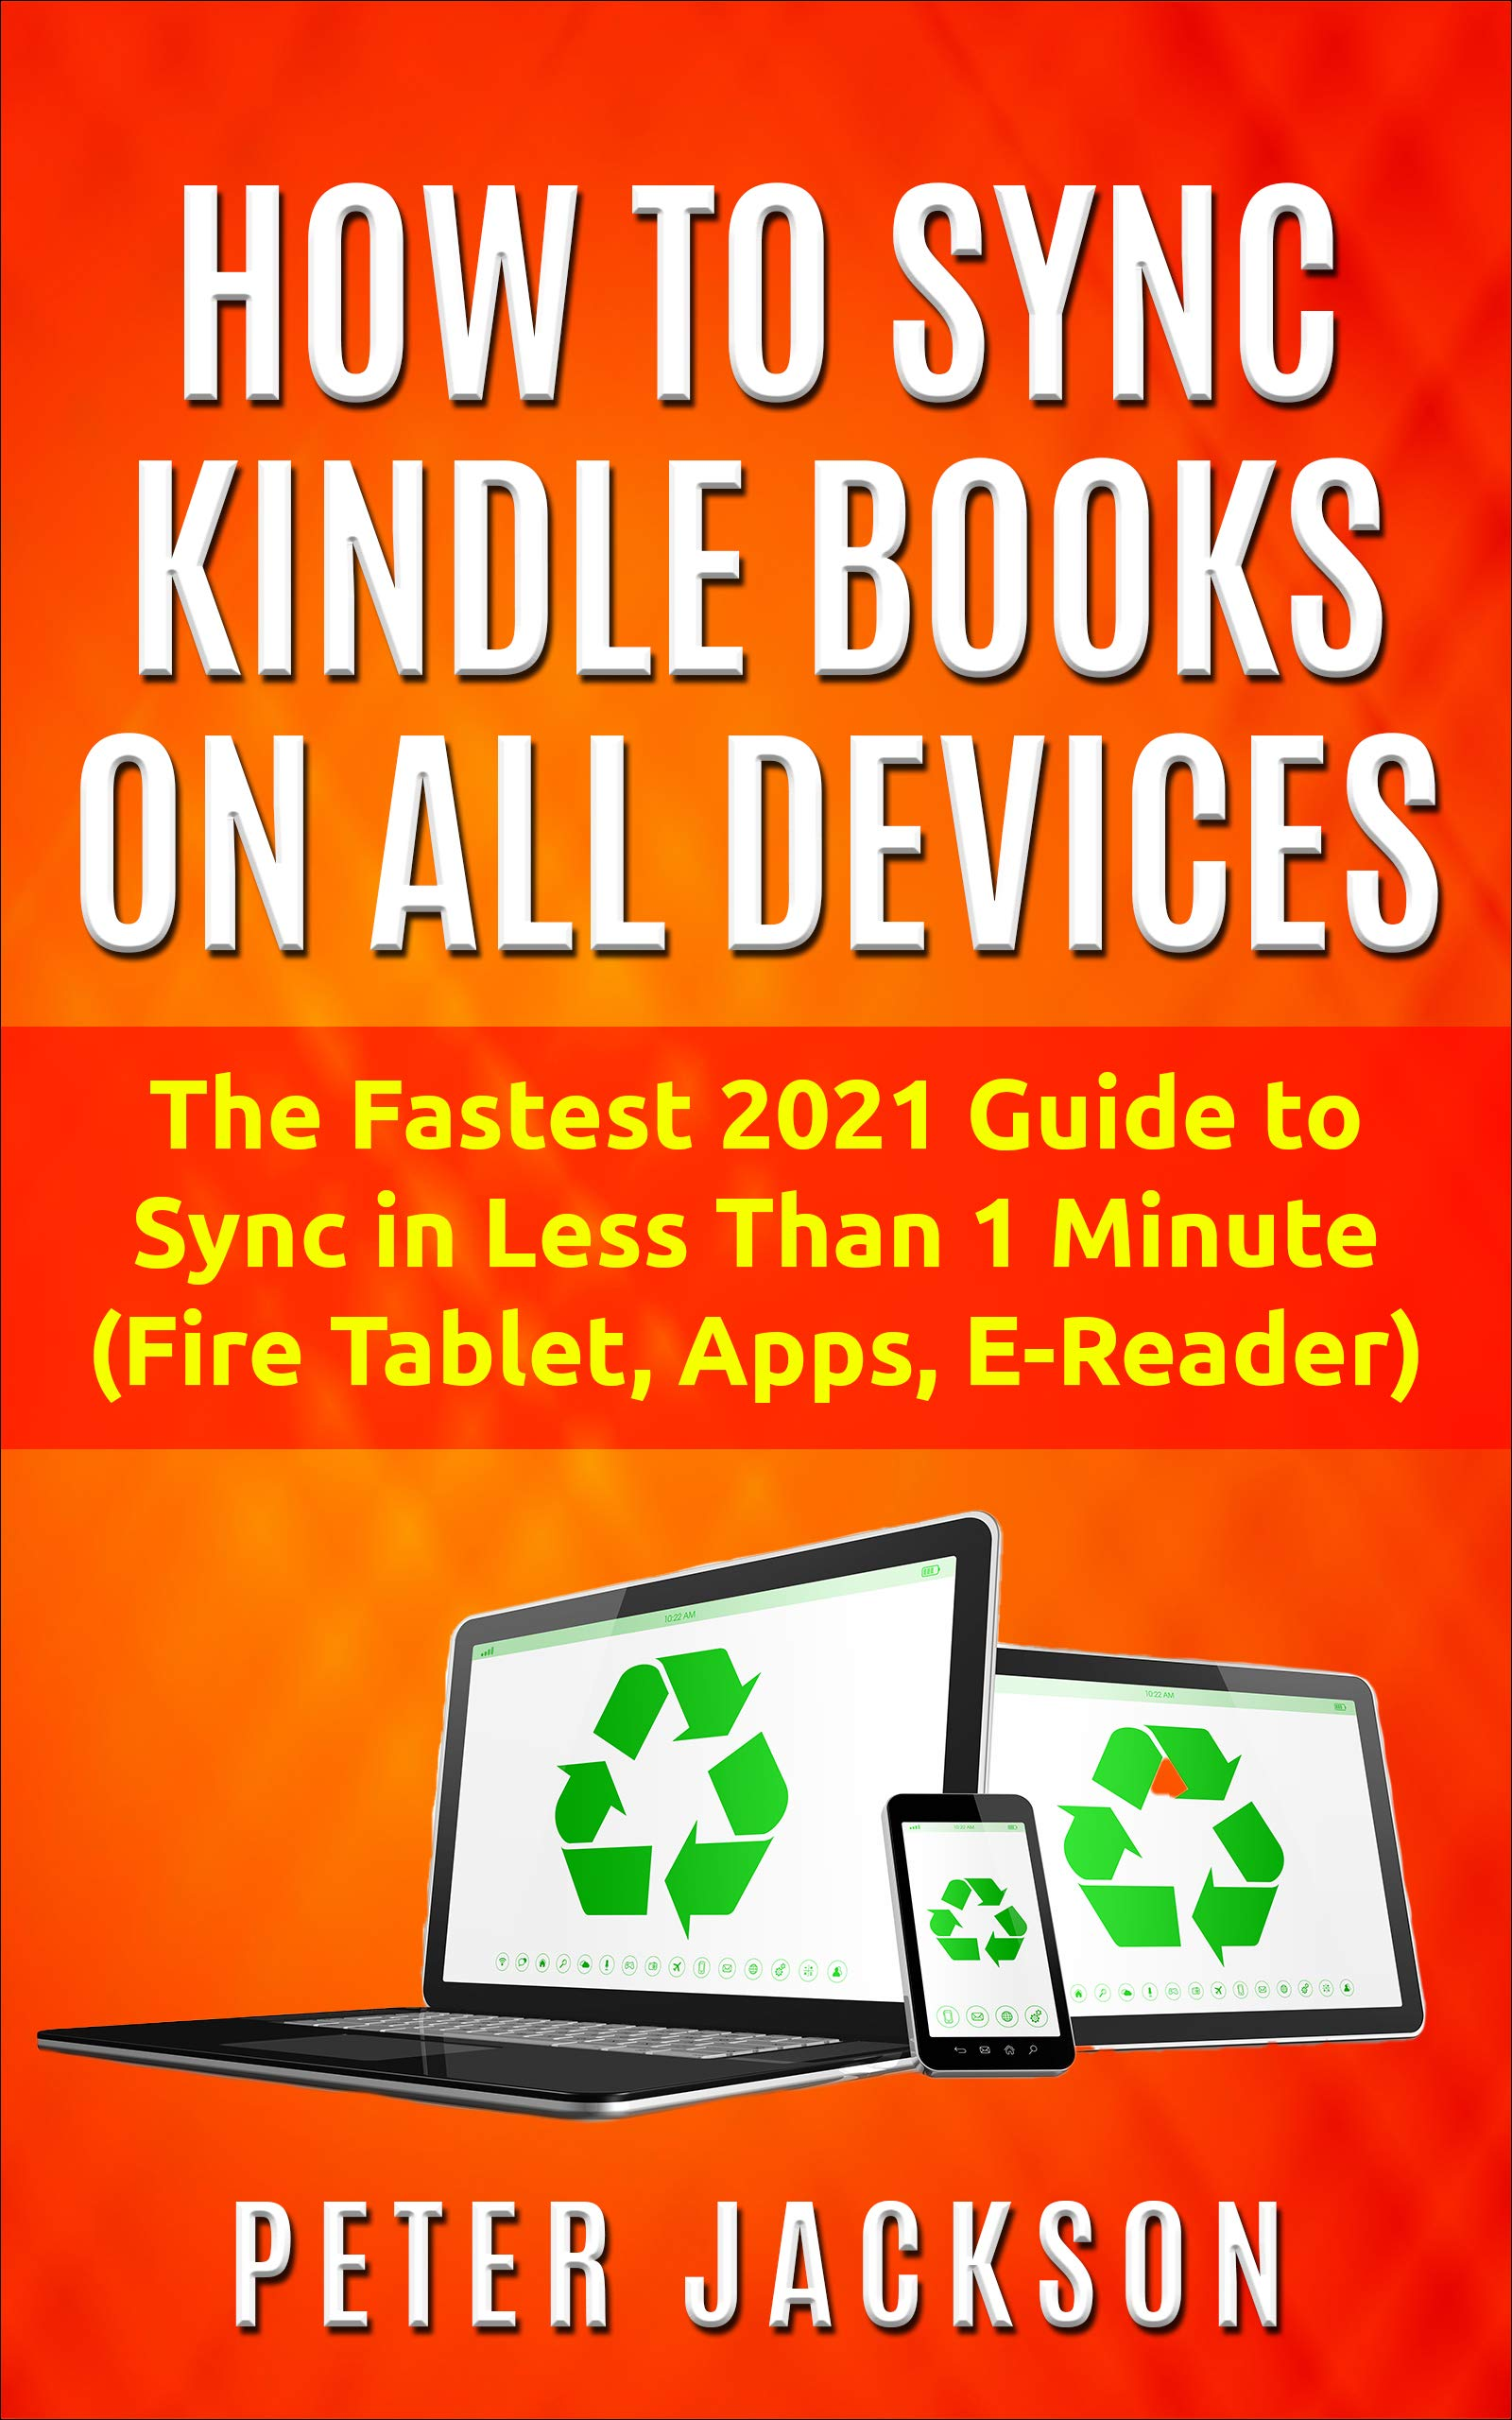 How To Sync Kindle Books On All Devices: The Fastest 2020 Guide To Sync In 1 Minute (Fire Tablet, Apps, E-Reader) (English...